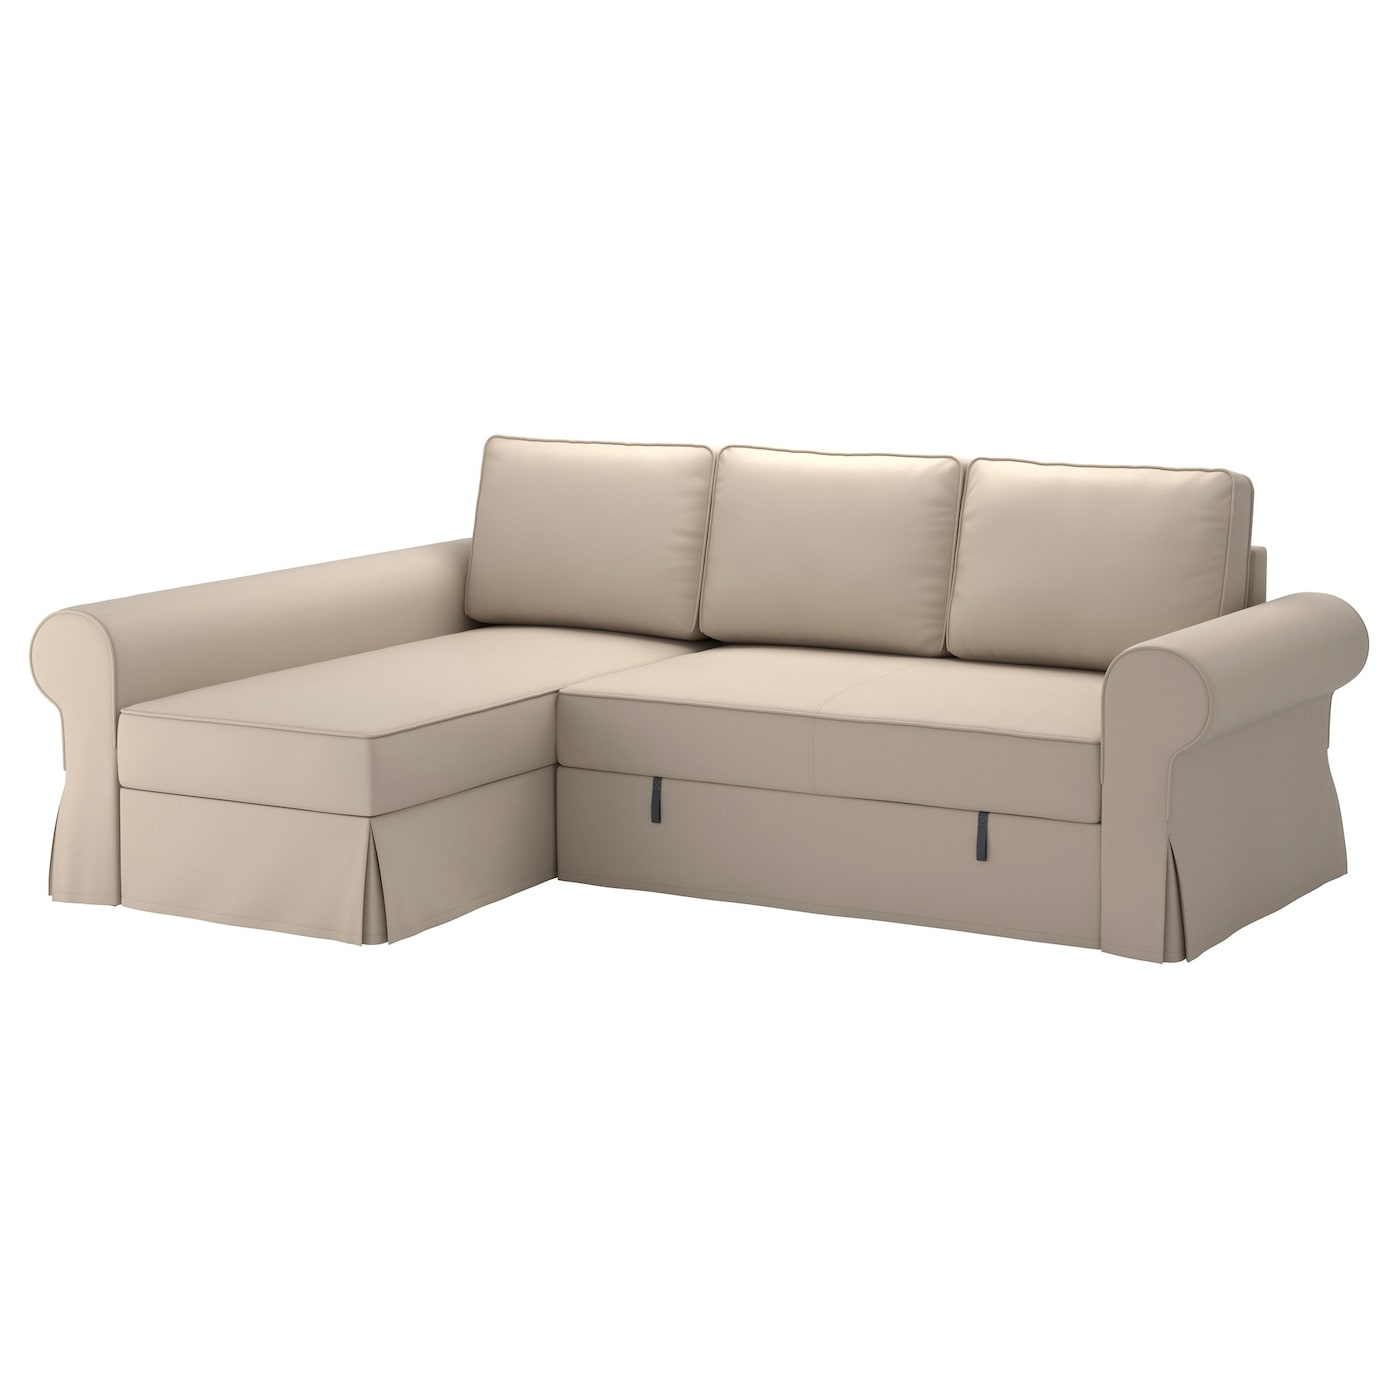 Backabro sofa bed with chaise longue ramna beige ikea for Chaise longue bed